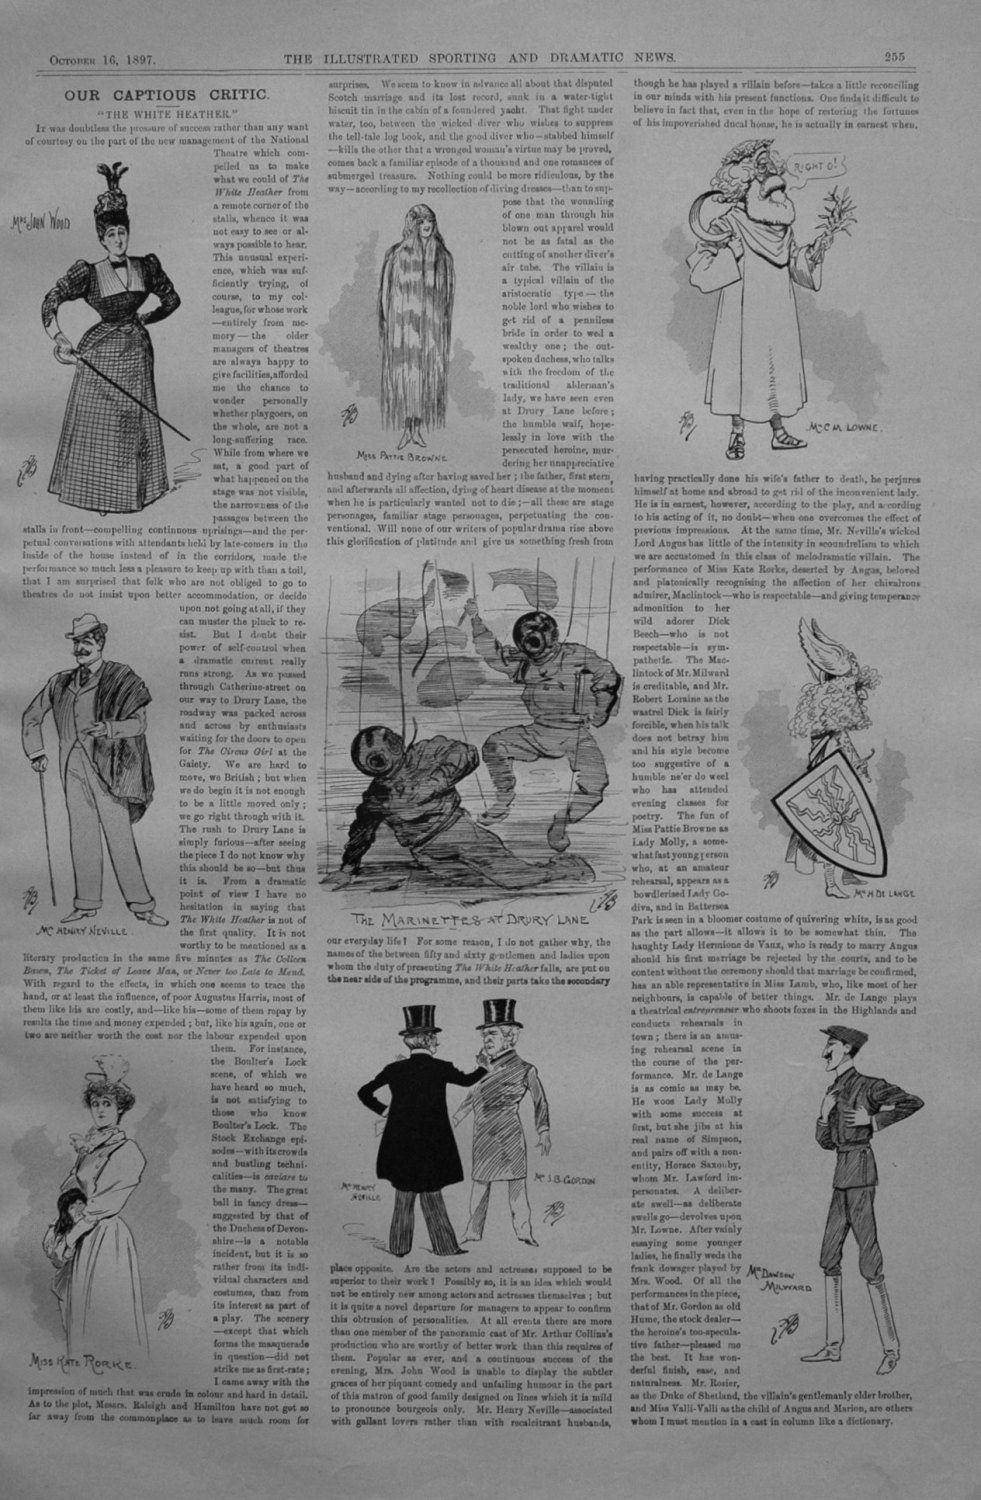 Our Captious Critic, October 16th 1897.